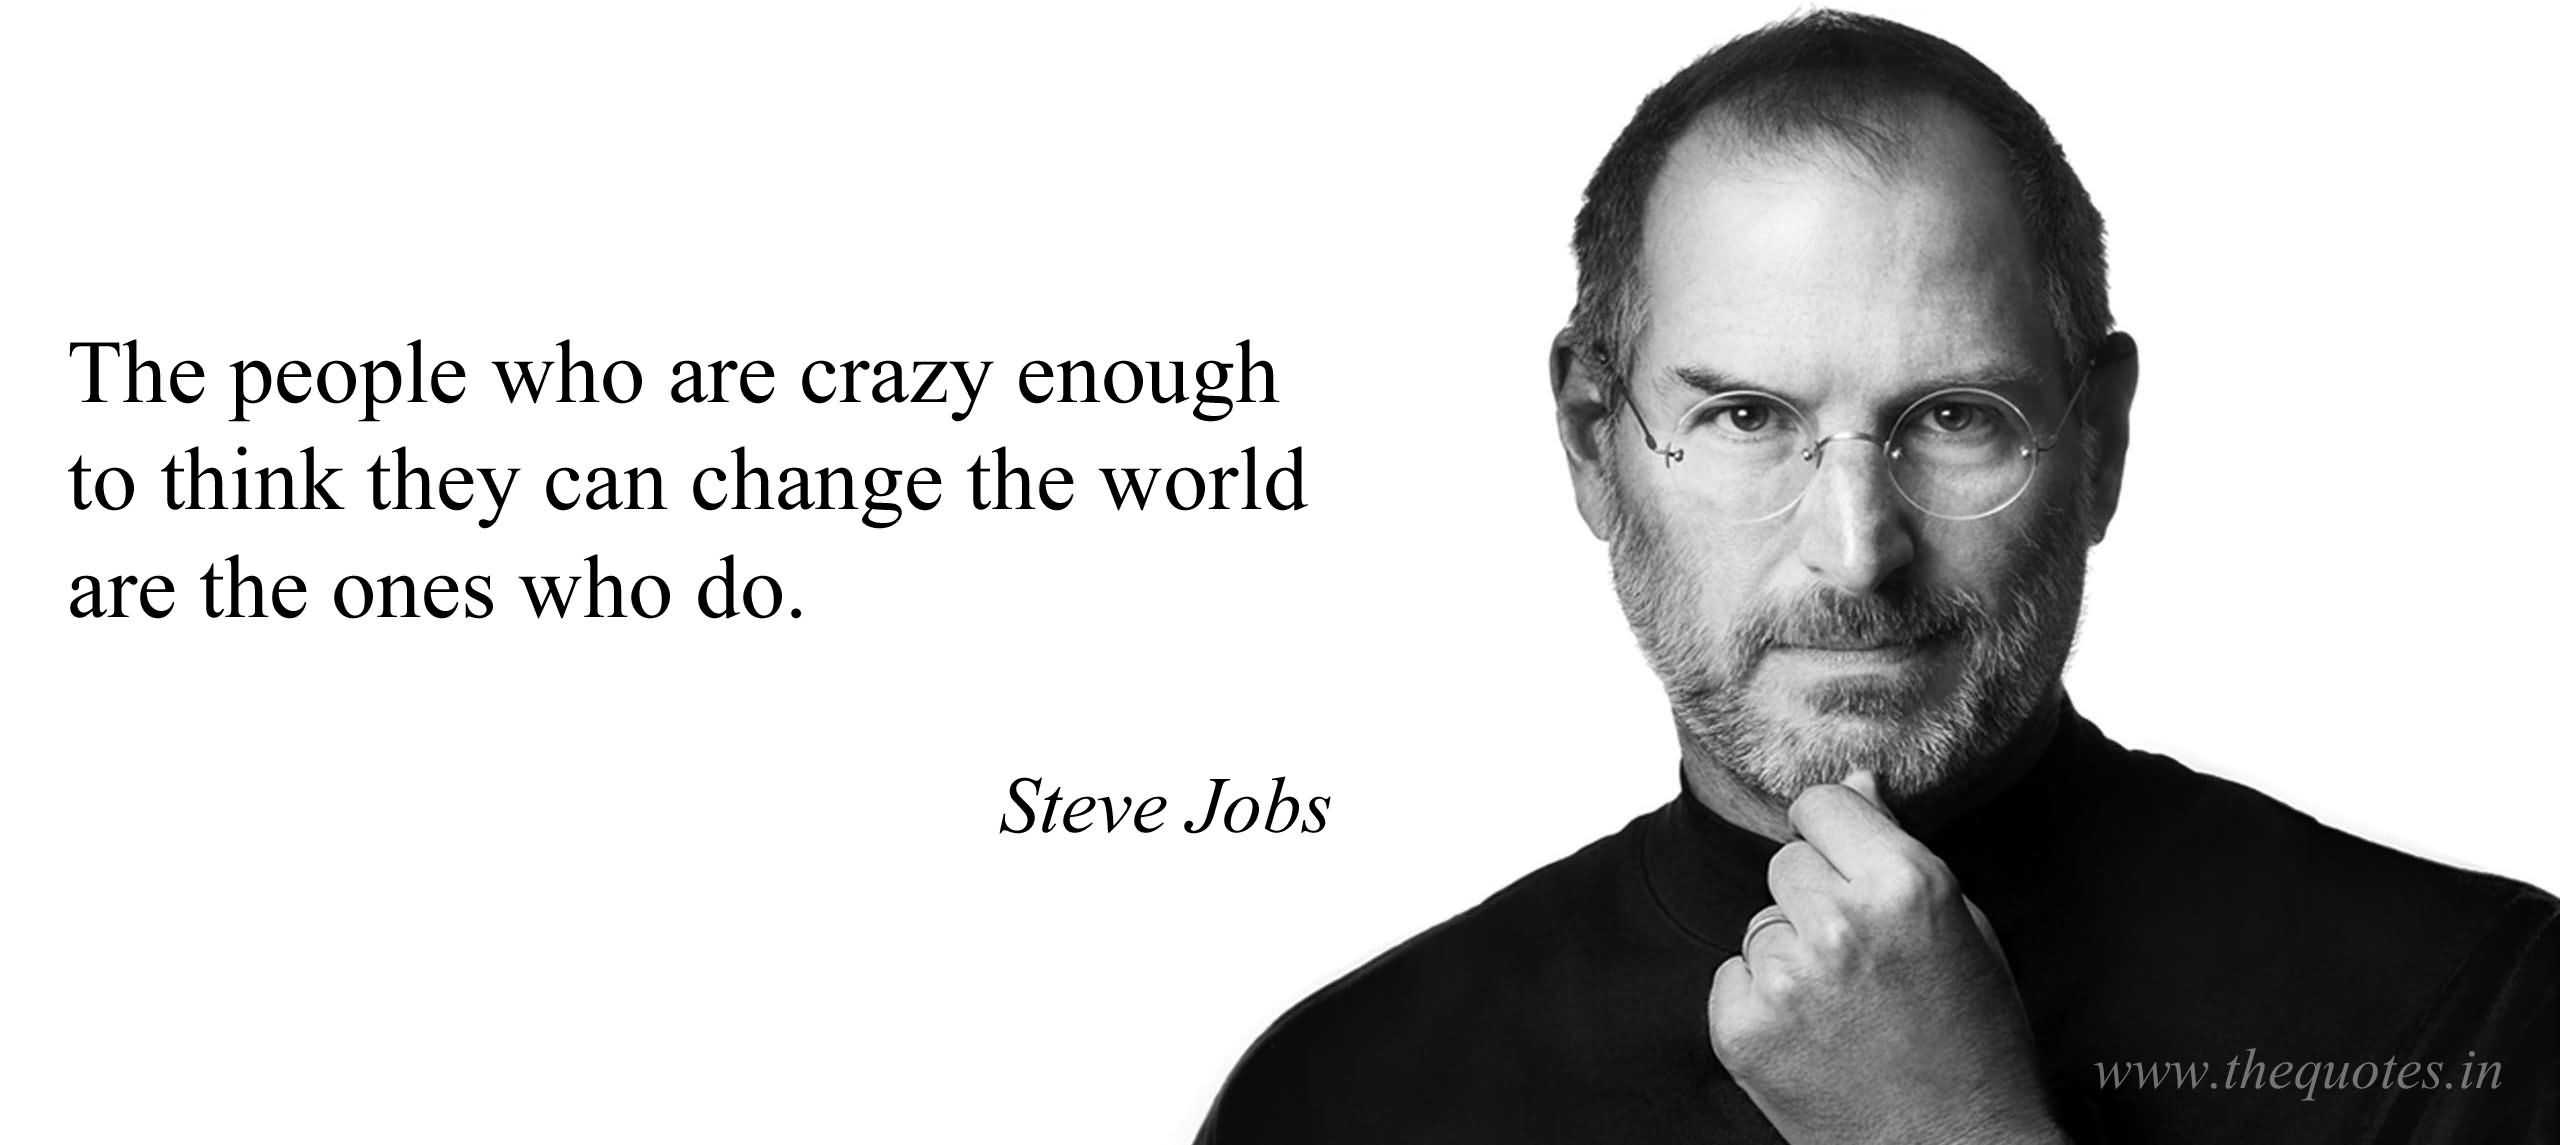 The people who are crazy enough to think they can change the world are the ones who do – Steve Jobs